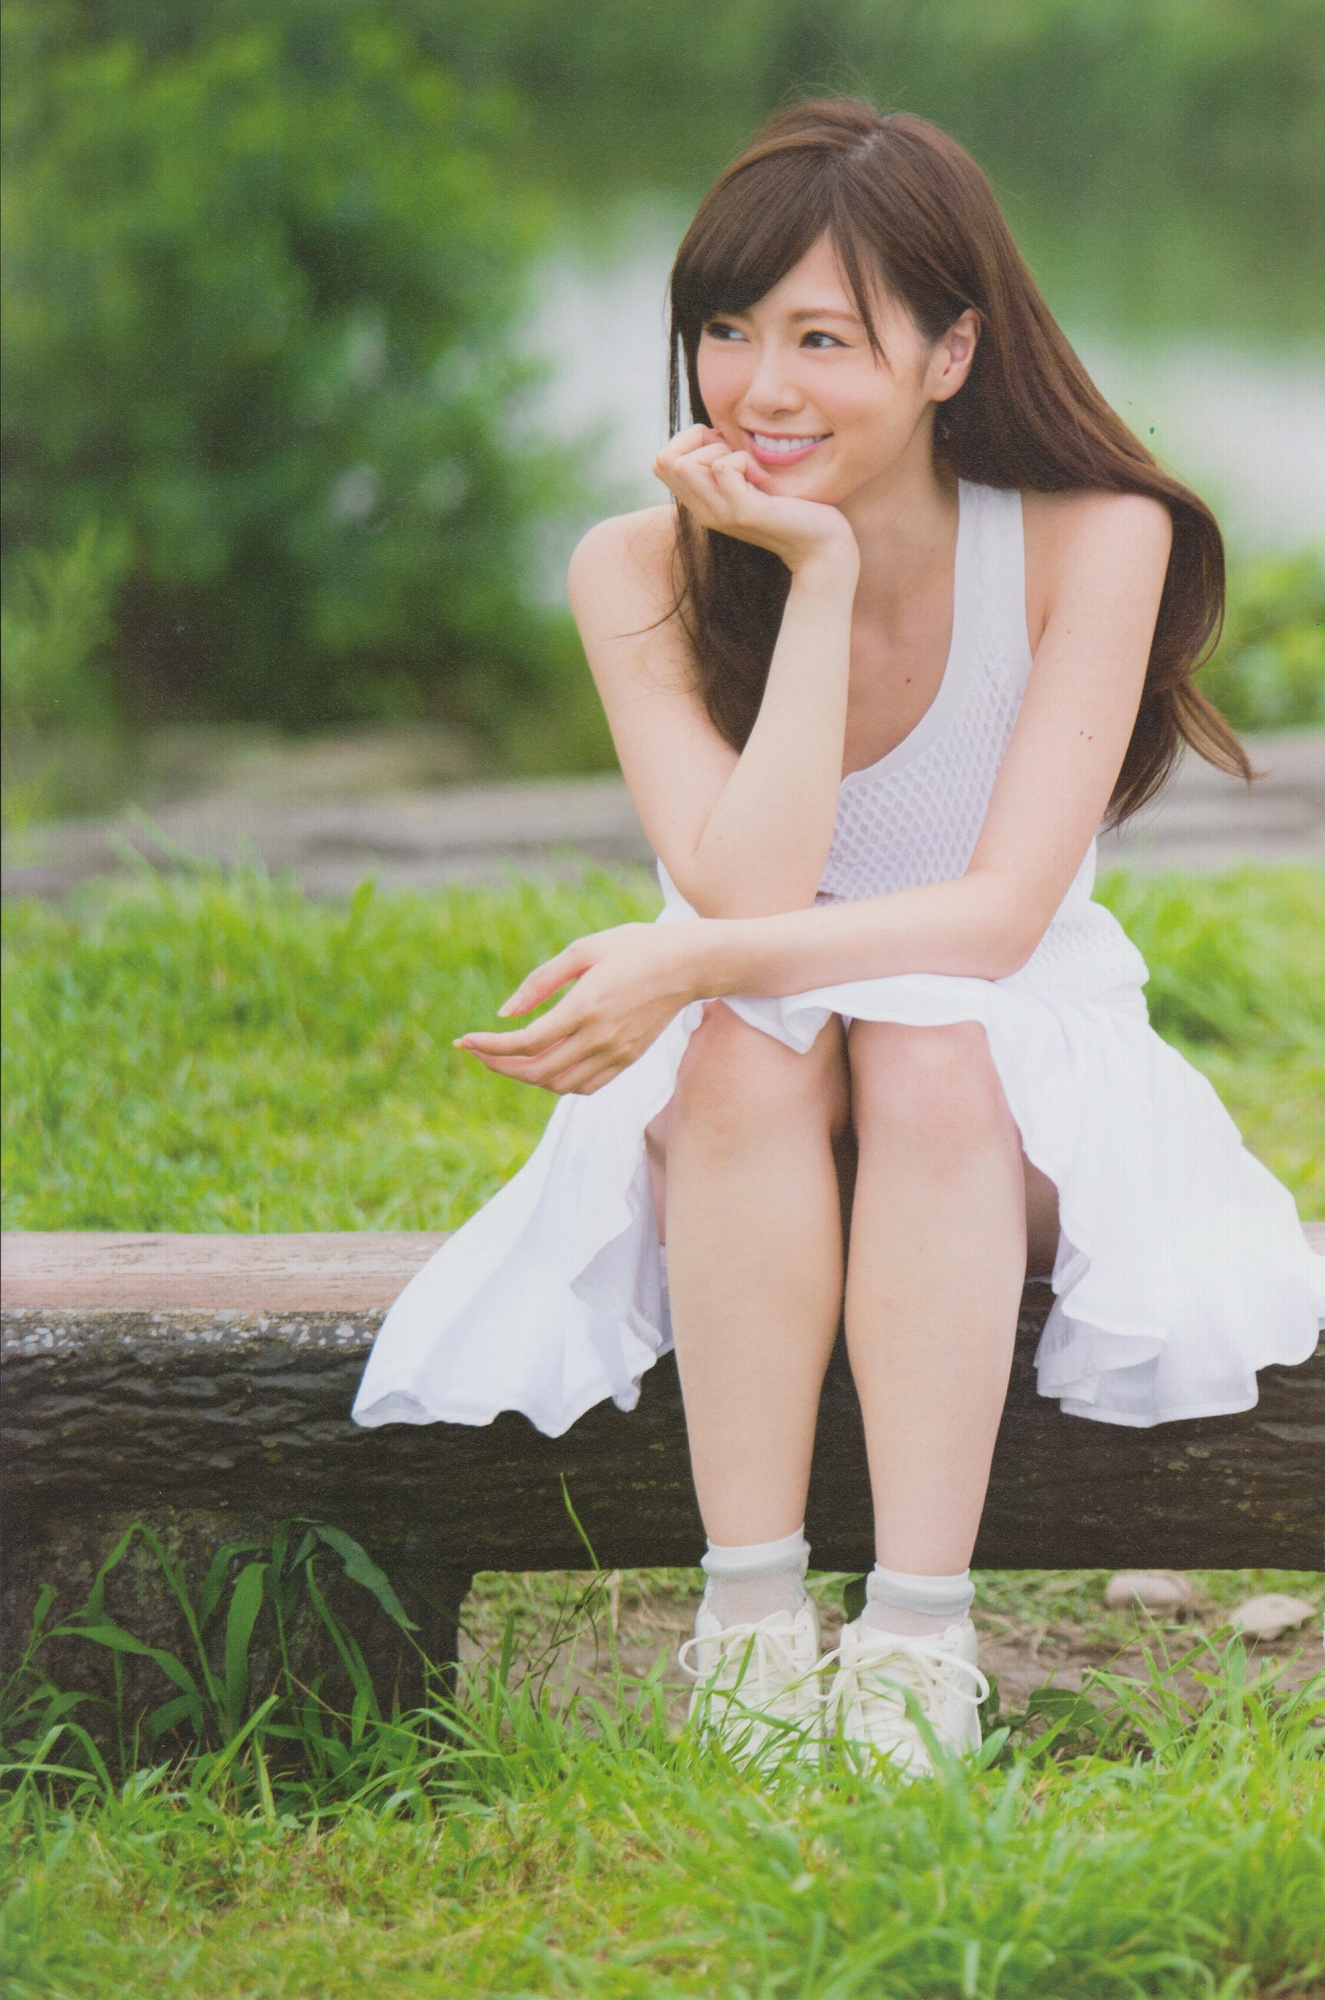 Mai Shiraishi Android/iPhone Wallpaper #1981 - Asiachan ...